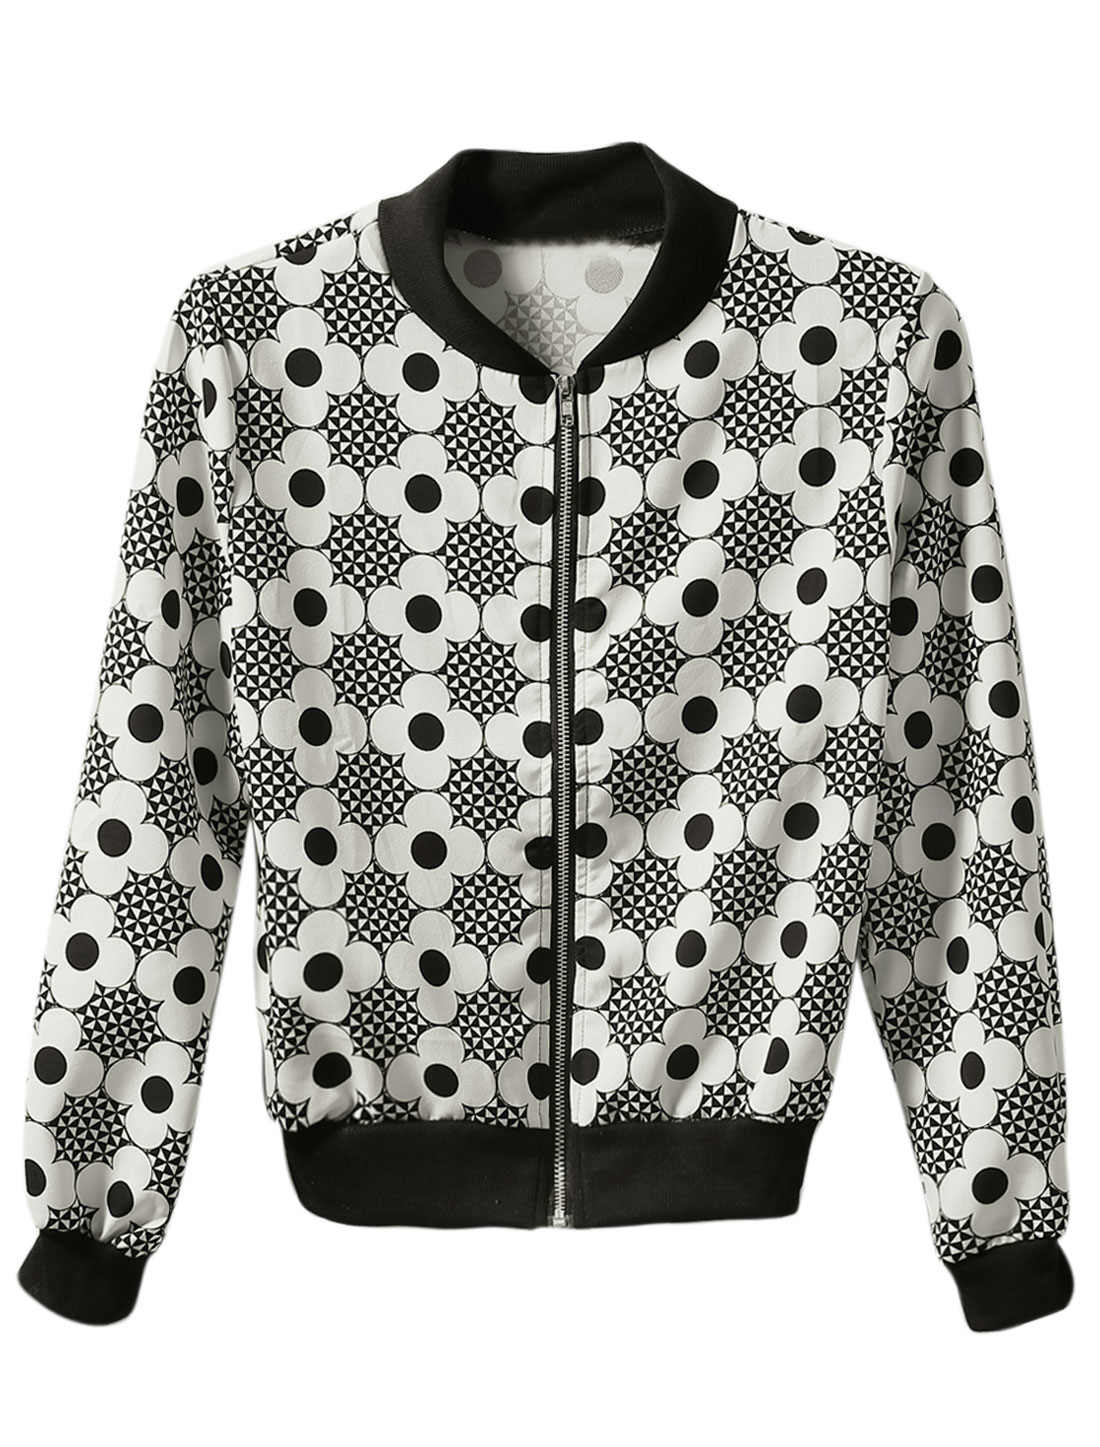 Lady Floral Geometric Pattern Zipper Closure Casual Jacket White Black S